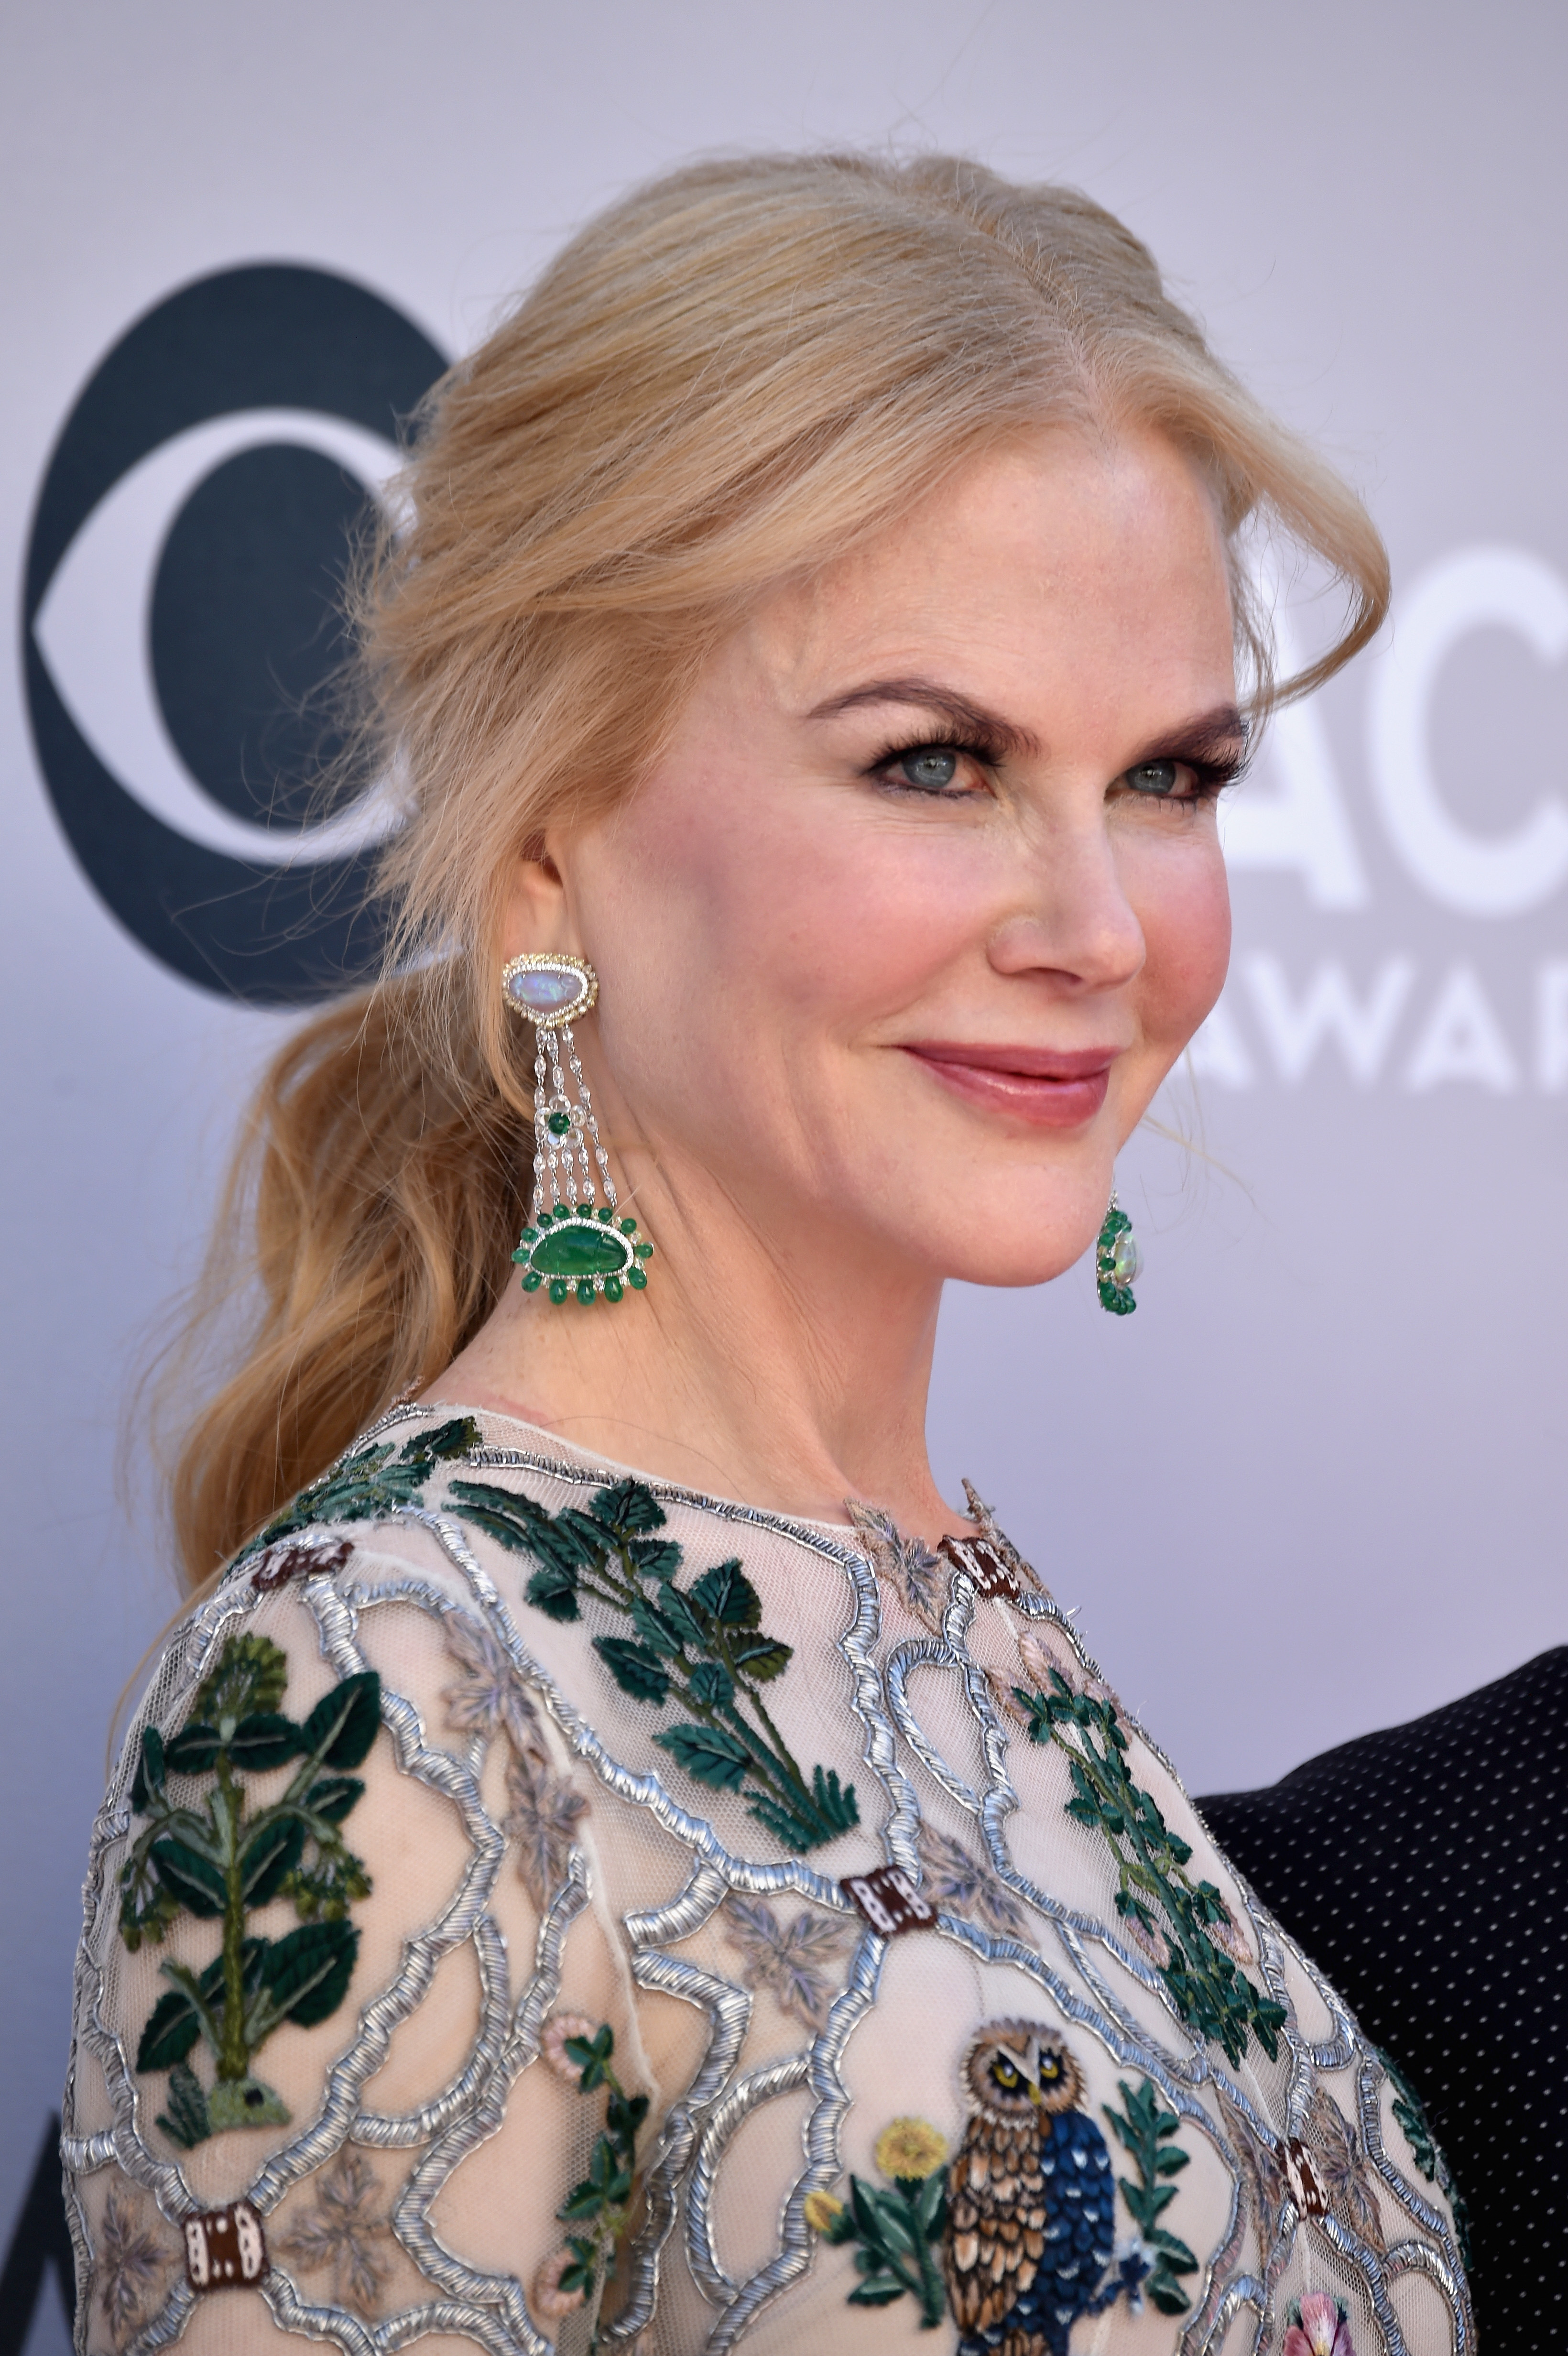 Country Fall Wallpaper Nicole Kidman Looks Great The Acms Go Fug Yourself